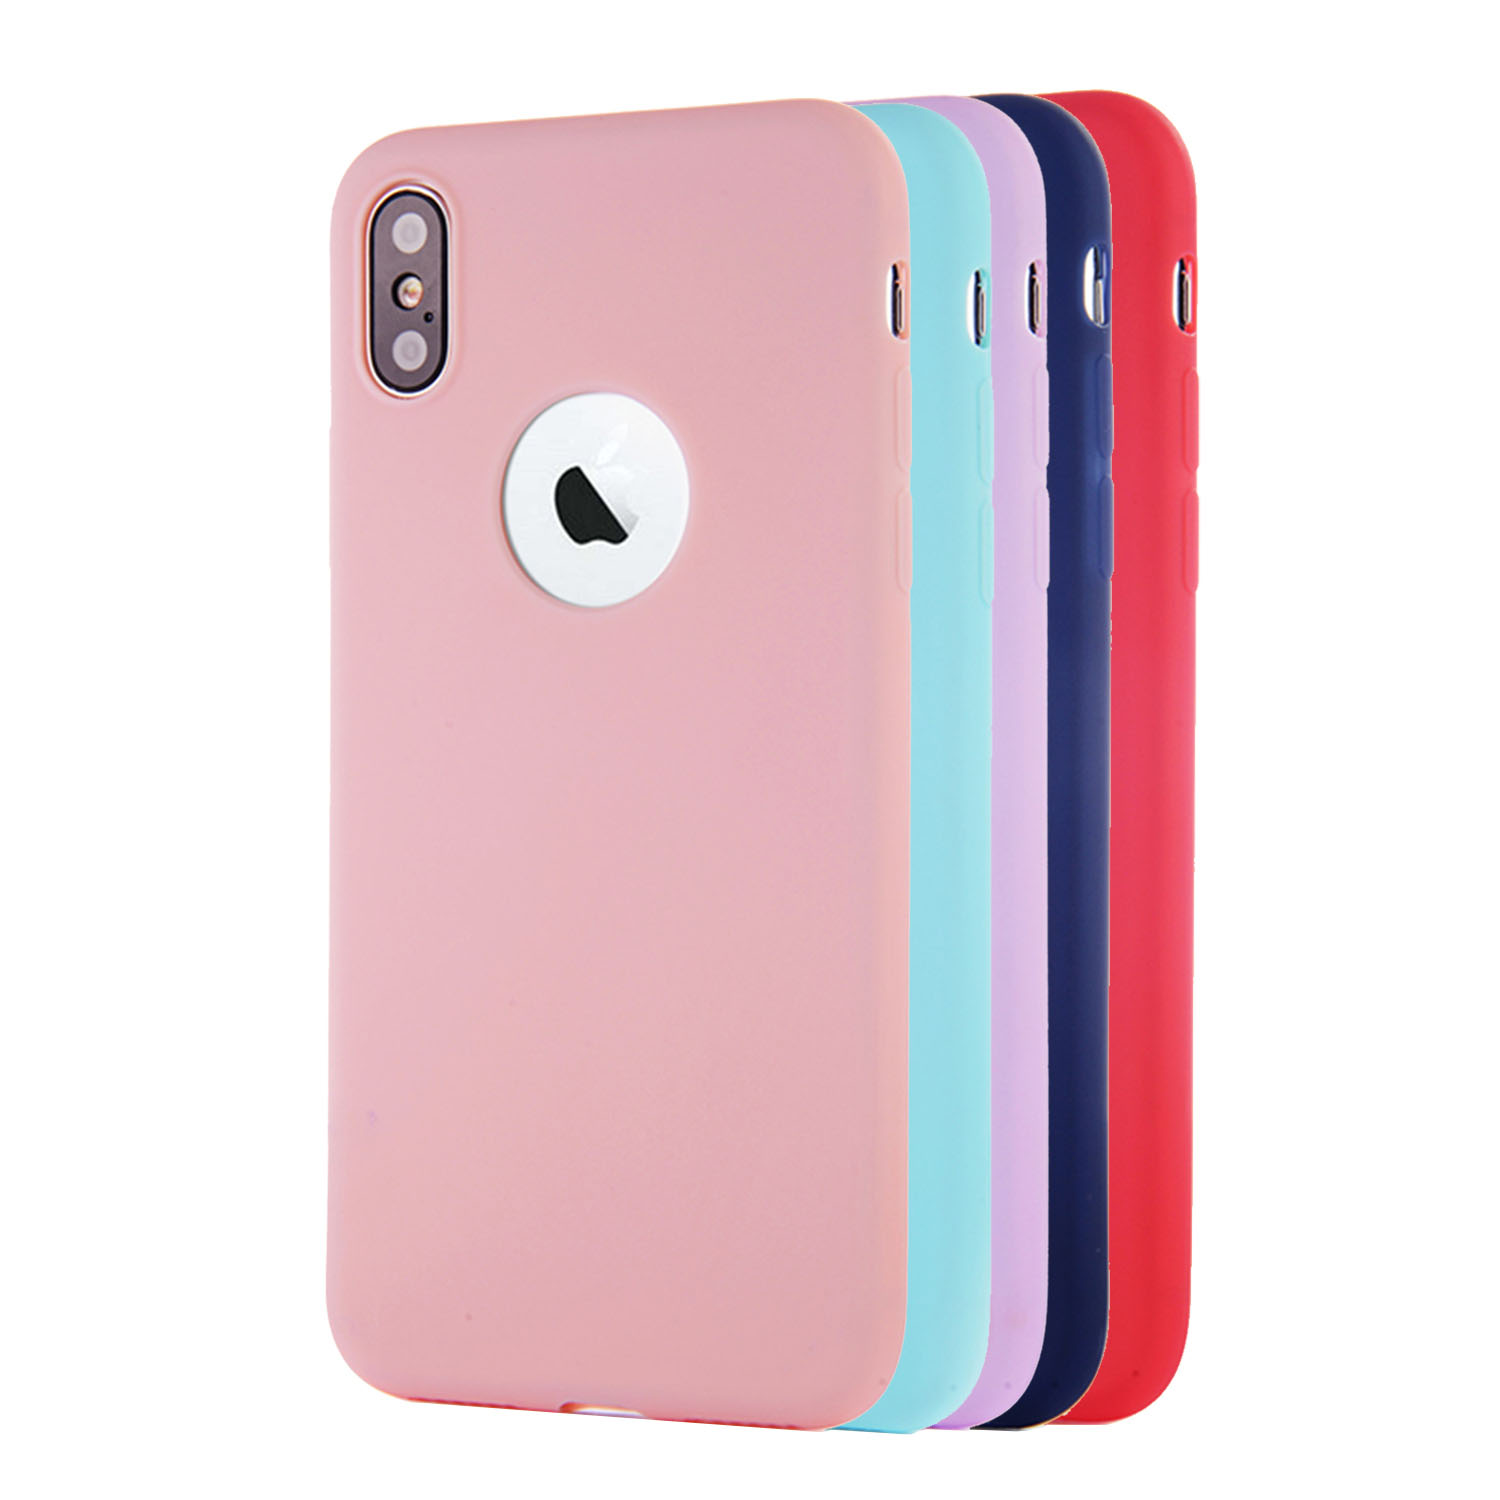 Cover pelle per iPhone 7 Plus / iPhone 8 Plus Custodia ZCRO